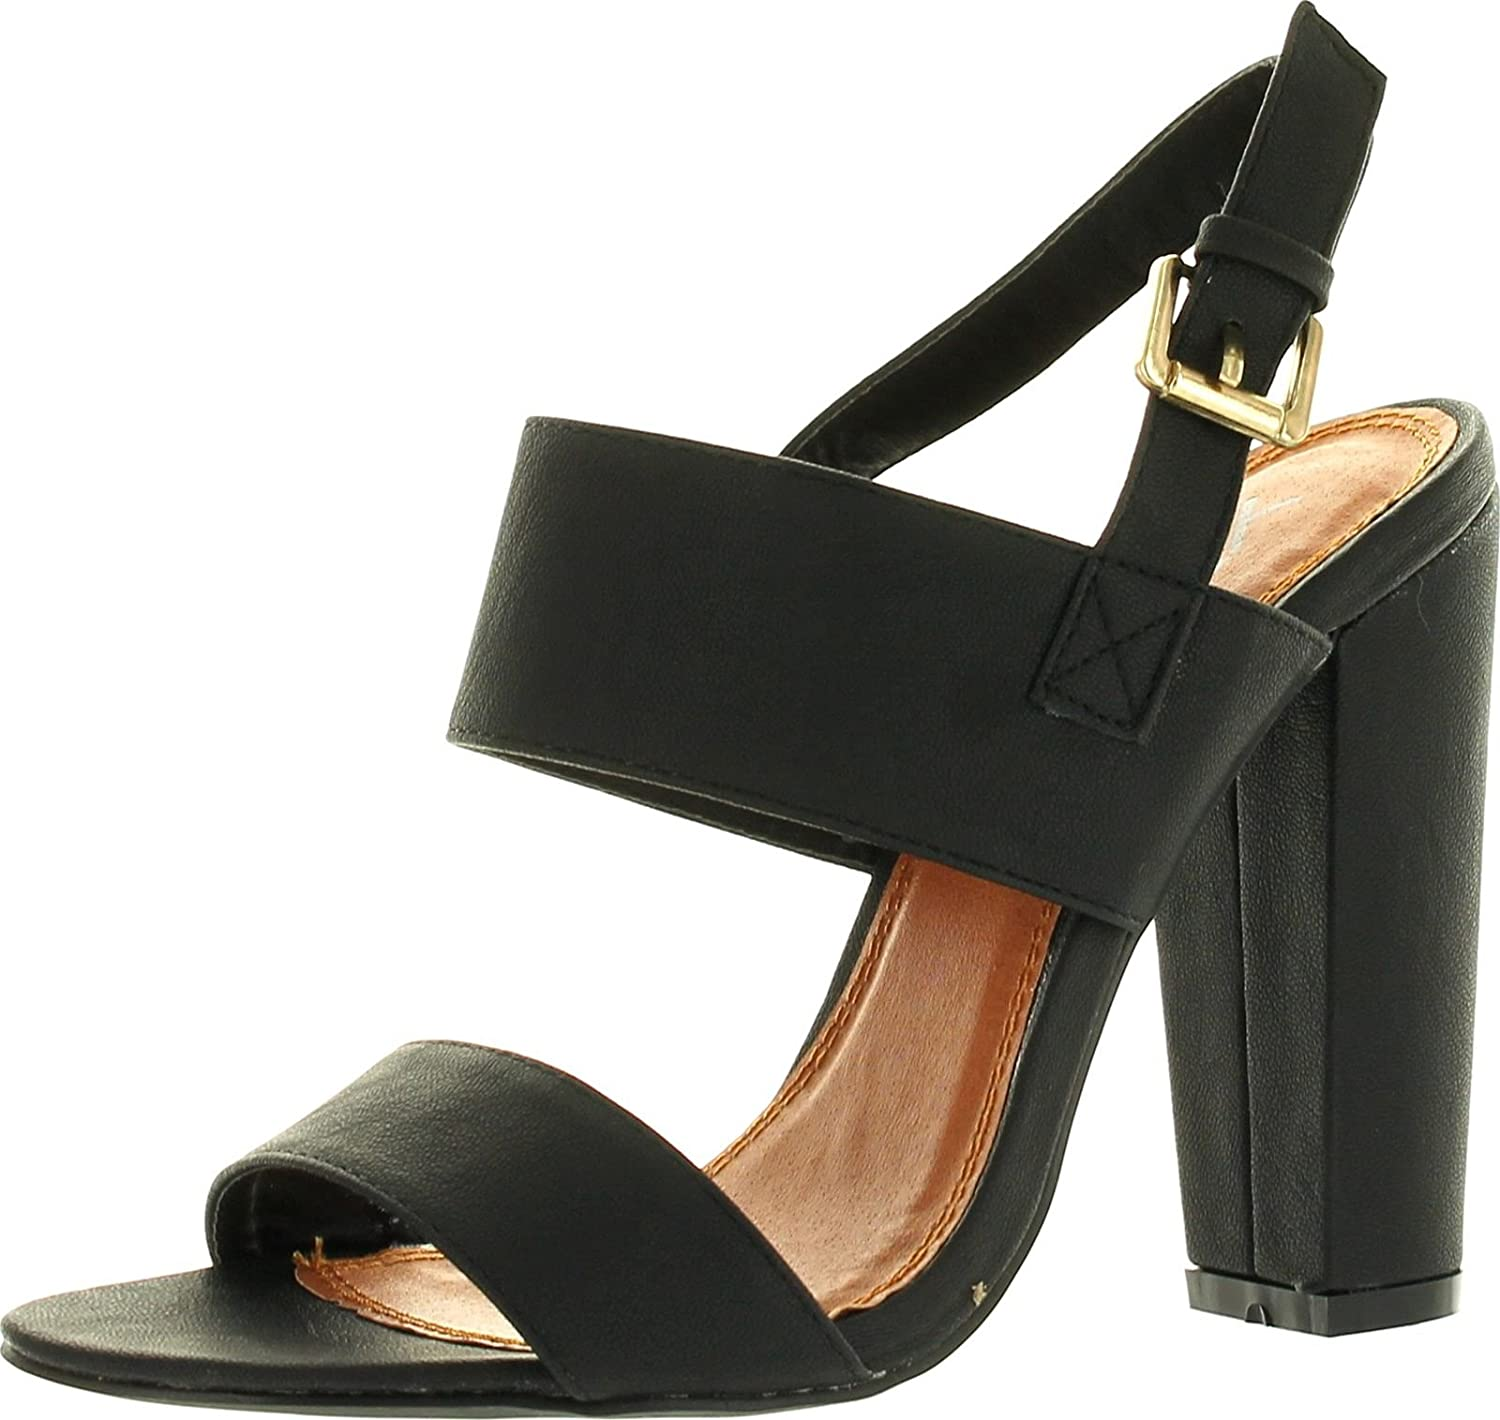 X2B Static Footwear Fay-1 Women's Round Toe Buckle Ankle Strap Chunky Heel Dress Sandals,Black,5.5